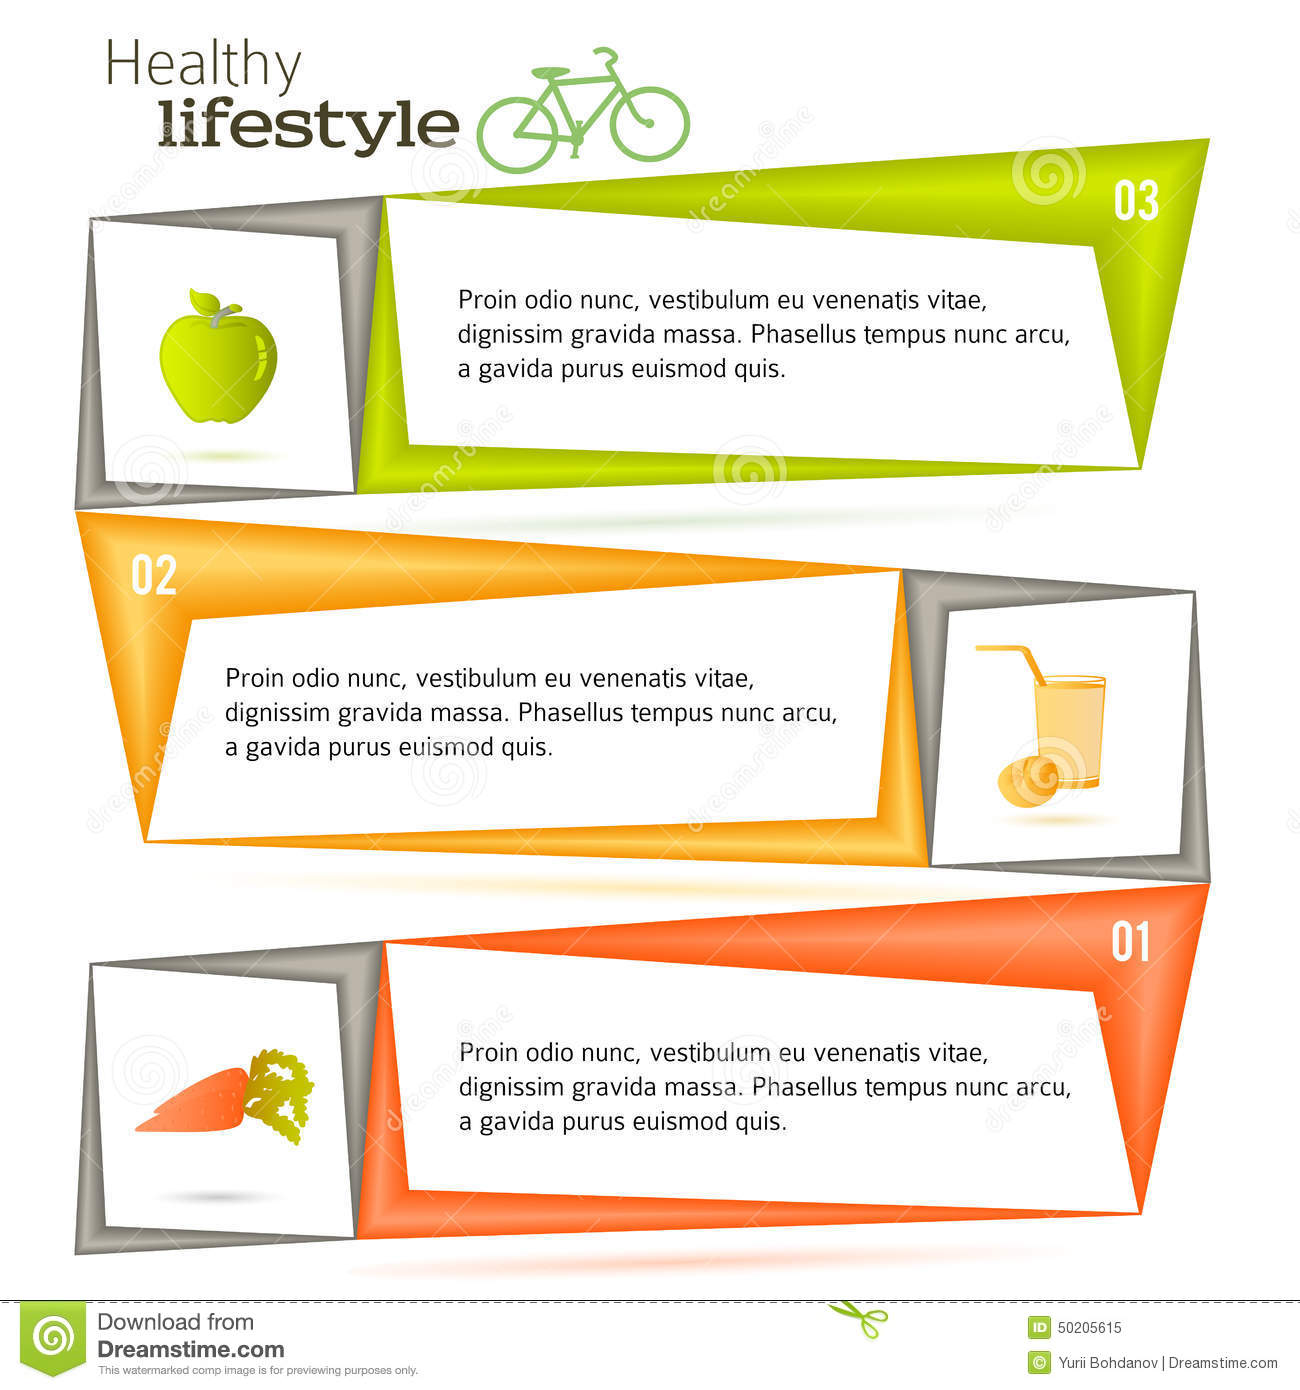 organic food lifestyle 7 steps to living an organic lifestyle many people who recognize the likely benefits of including organic food and other organic products.